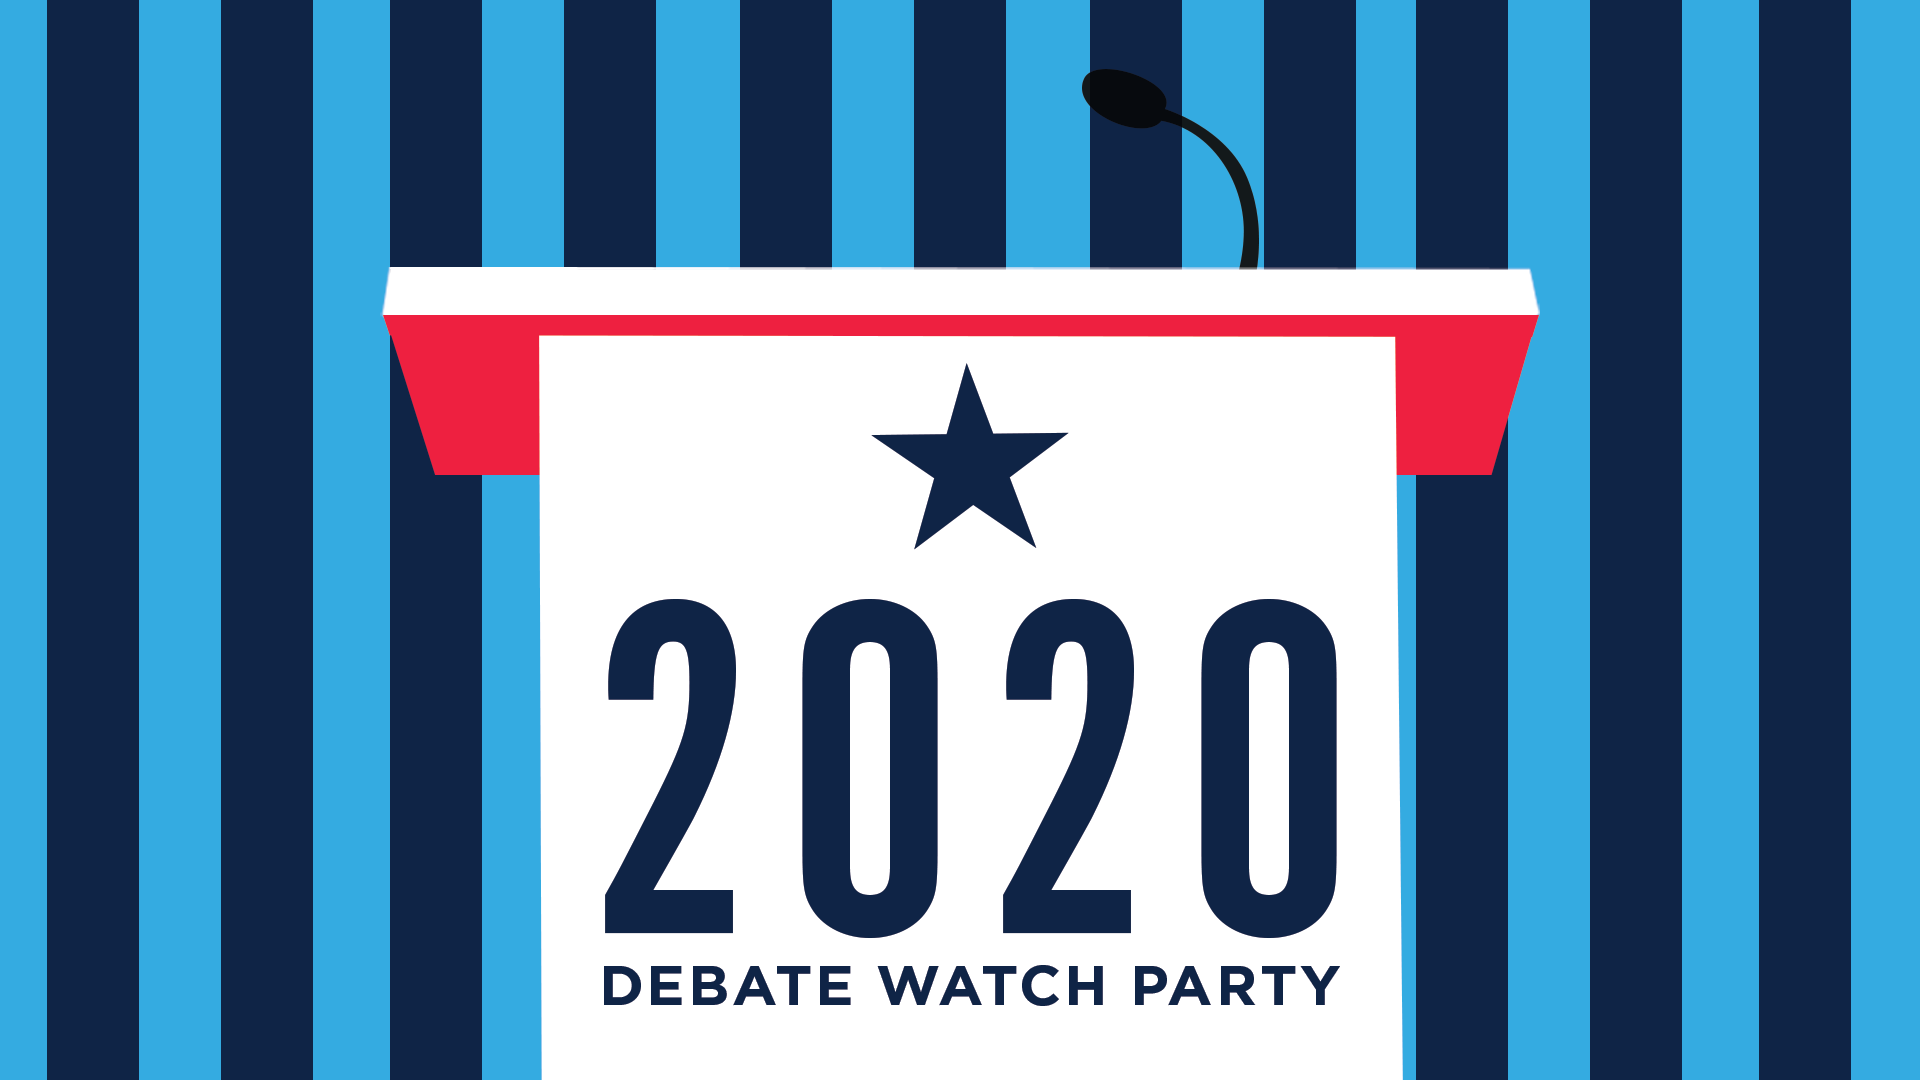 Debatewatchparty1.png